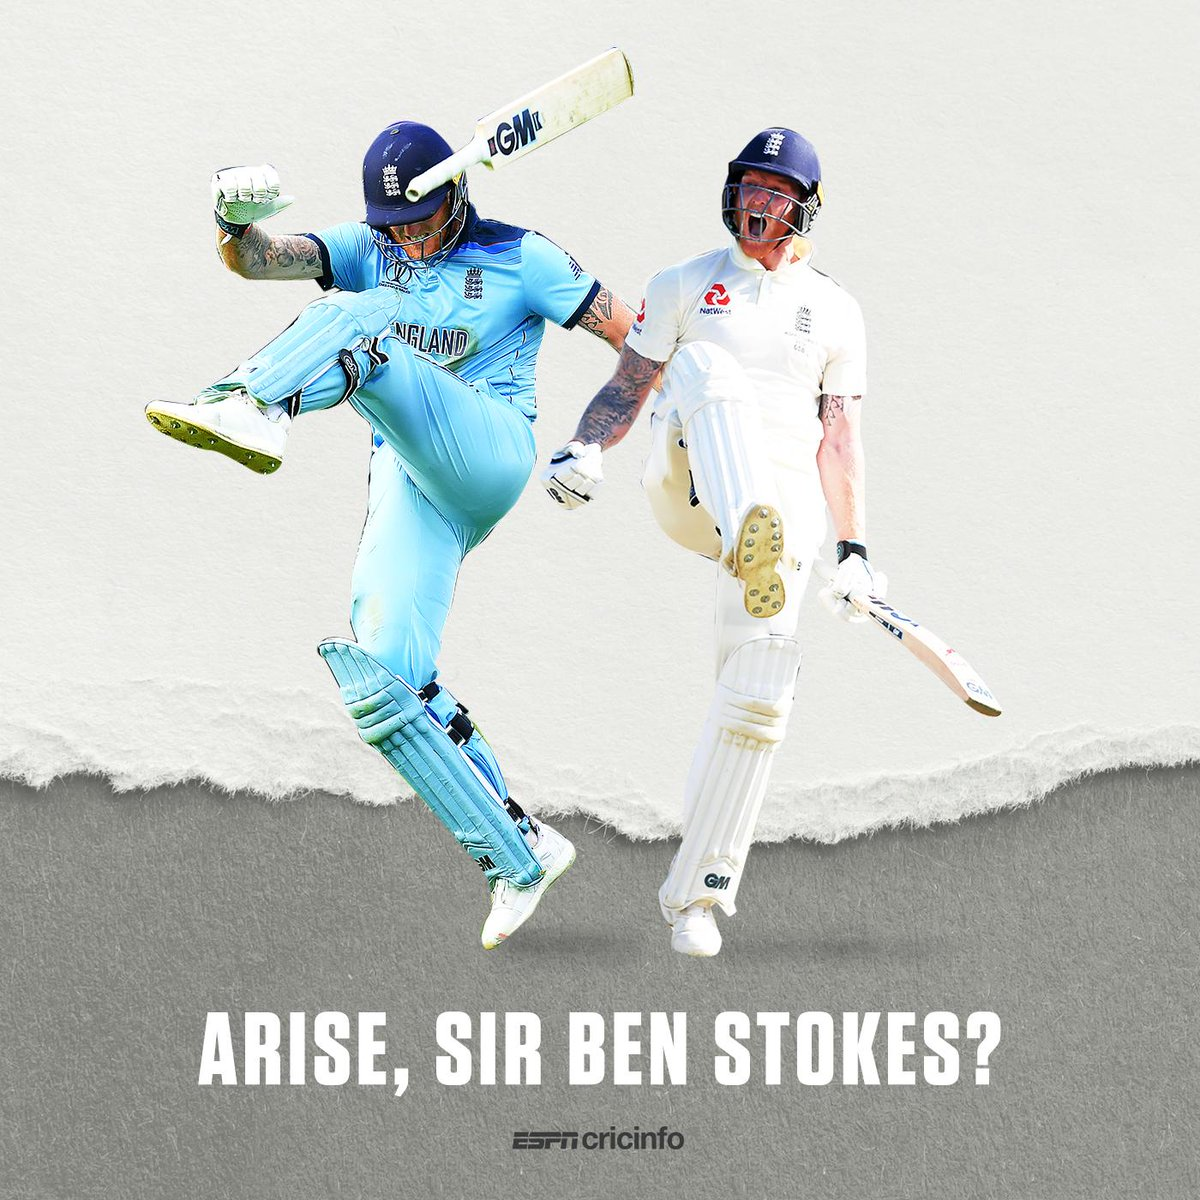 2019 - the year of Ben Stokes 💪